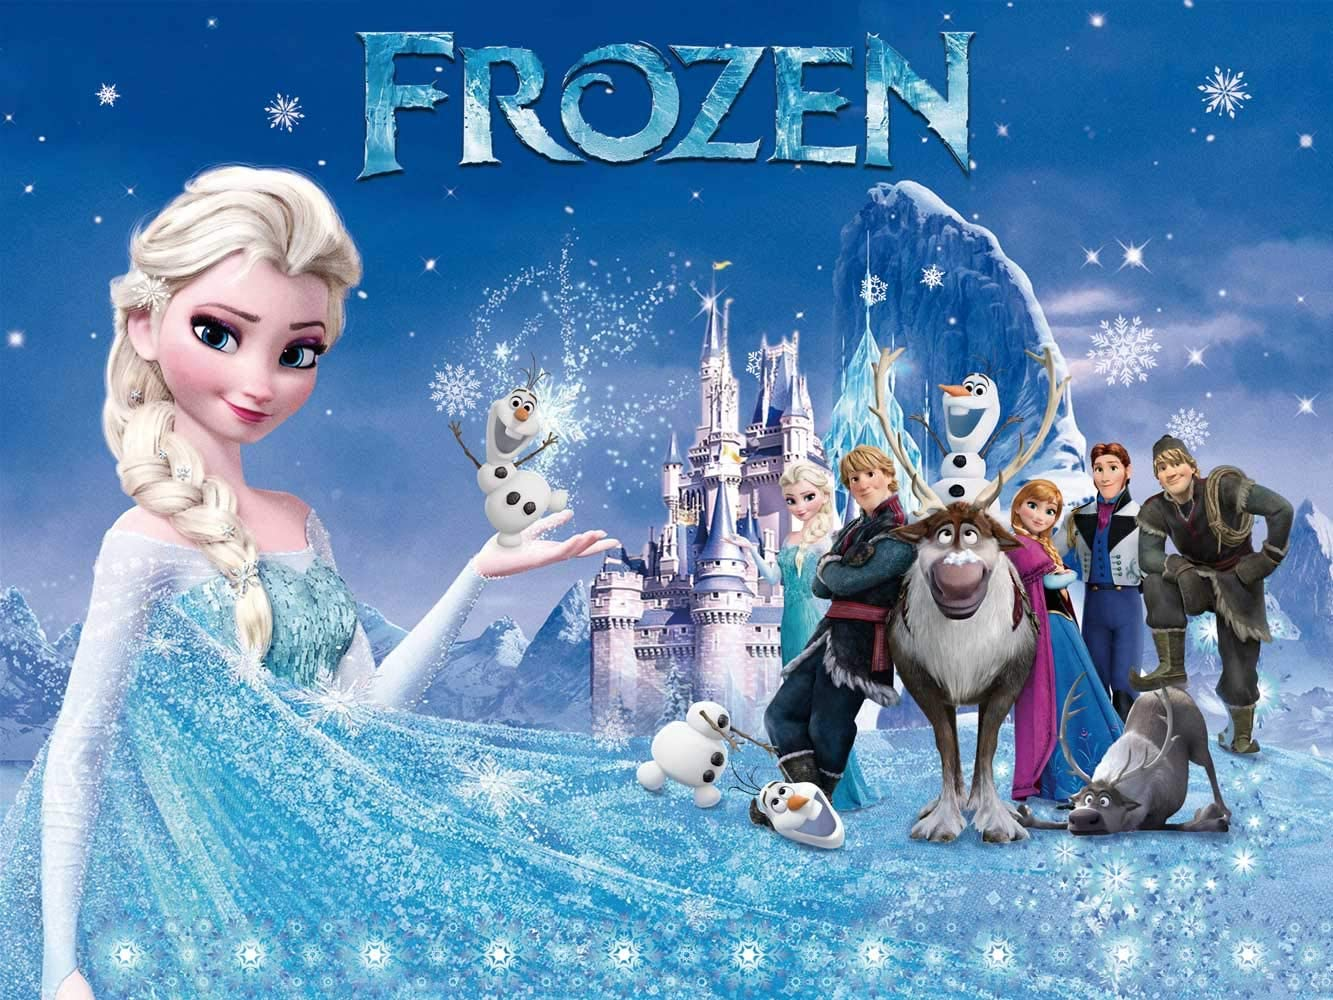 Frozen Girl Backdrop   1st Birthday   Baby Shower   for Girl   Elsa Princess   Party Supplies   Banner Background Photography Ice Castle